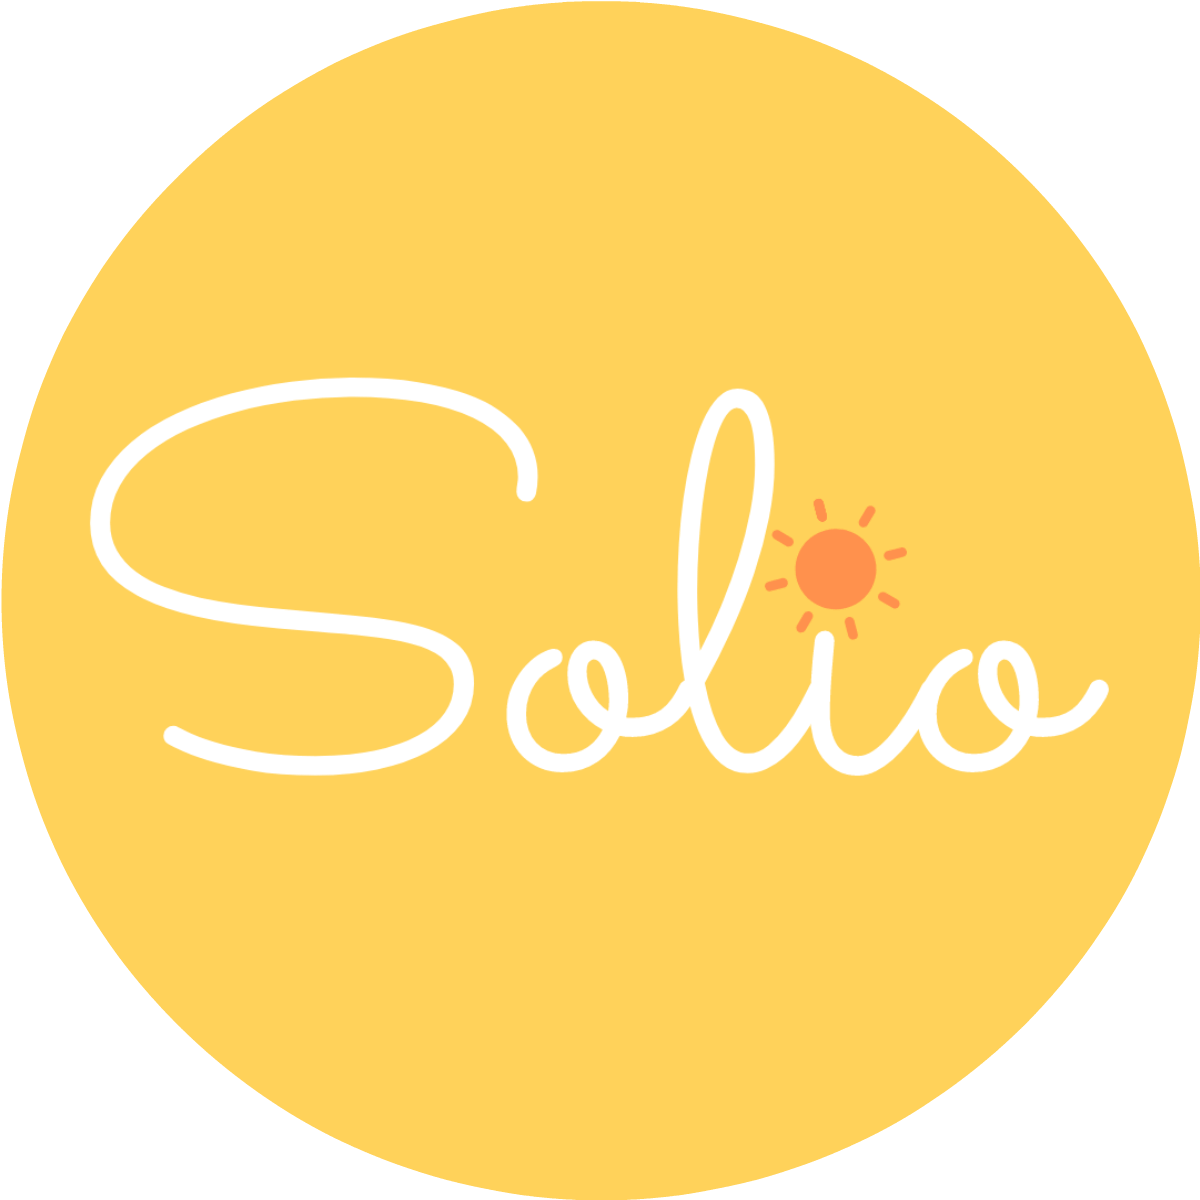 logo solio square white orange